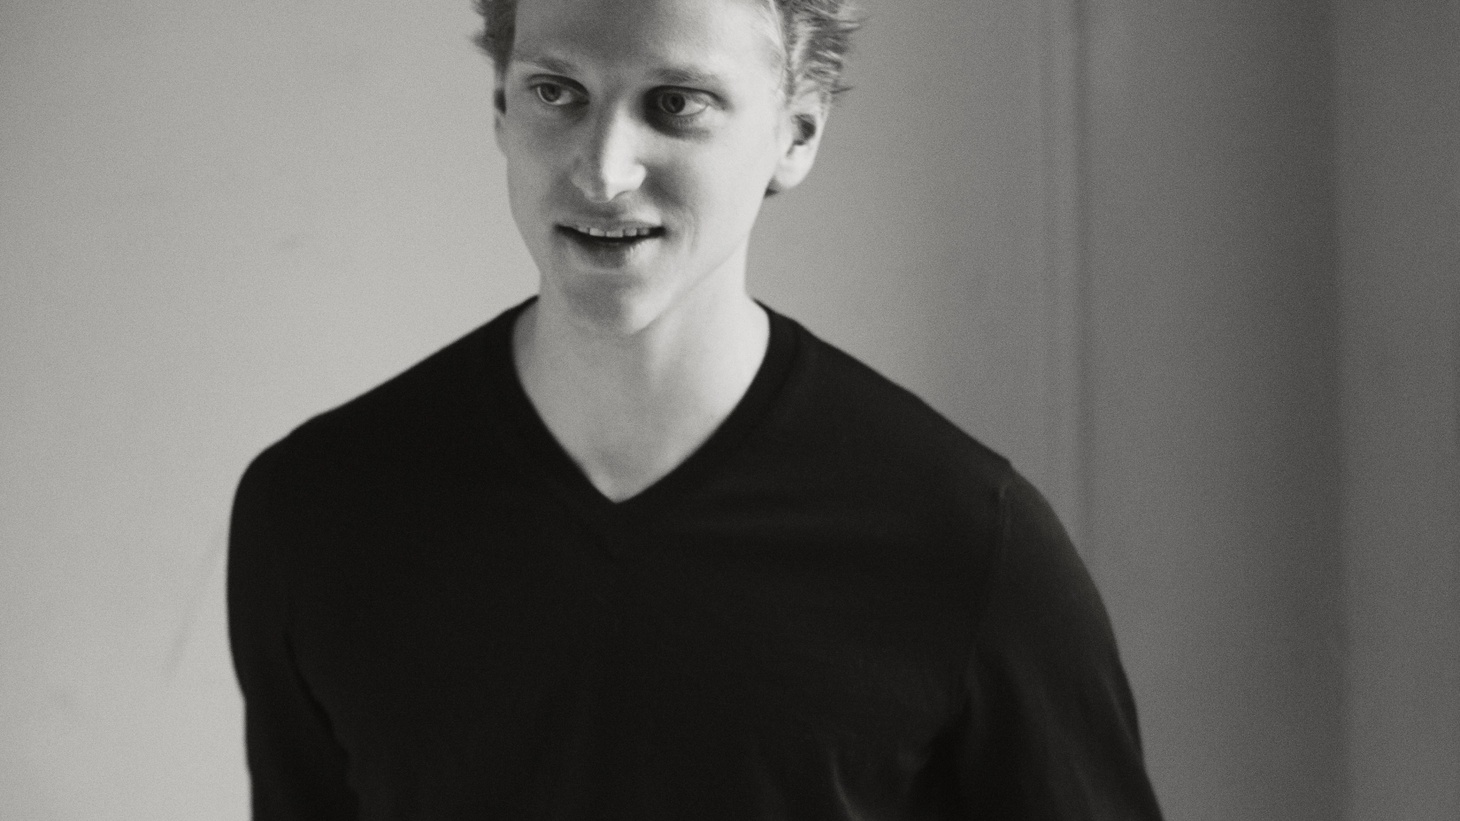 In his Guest DJ set, dancer David Hallberg chooses artists that have helped him bring his own modern energy into works of classic ballet.